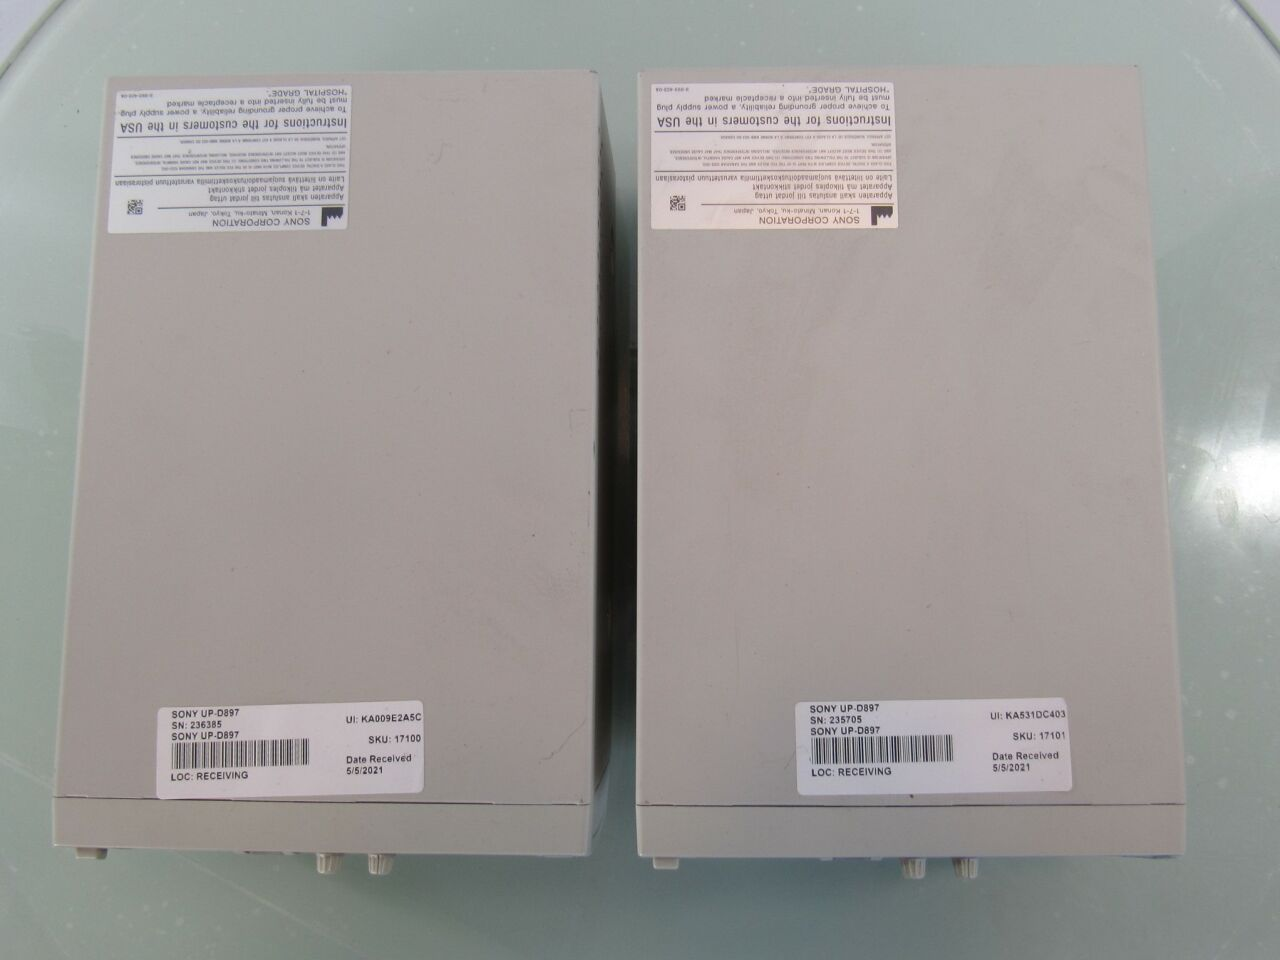 SONY UP-D897  - Lot of 2 Printer